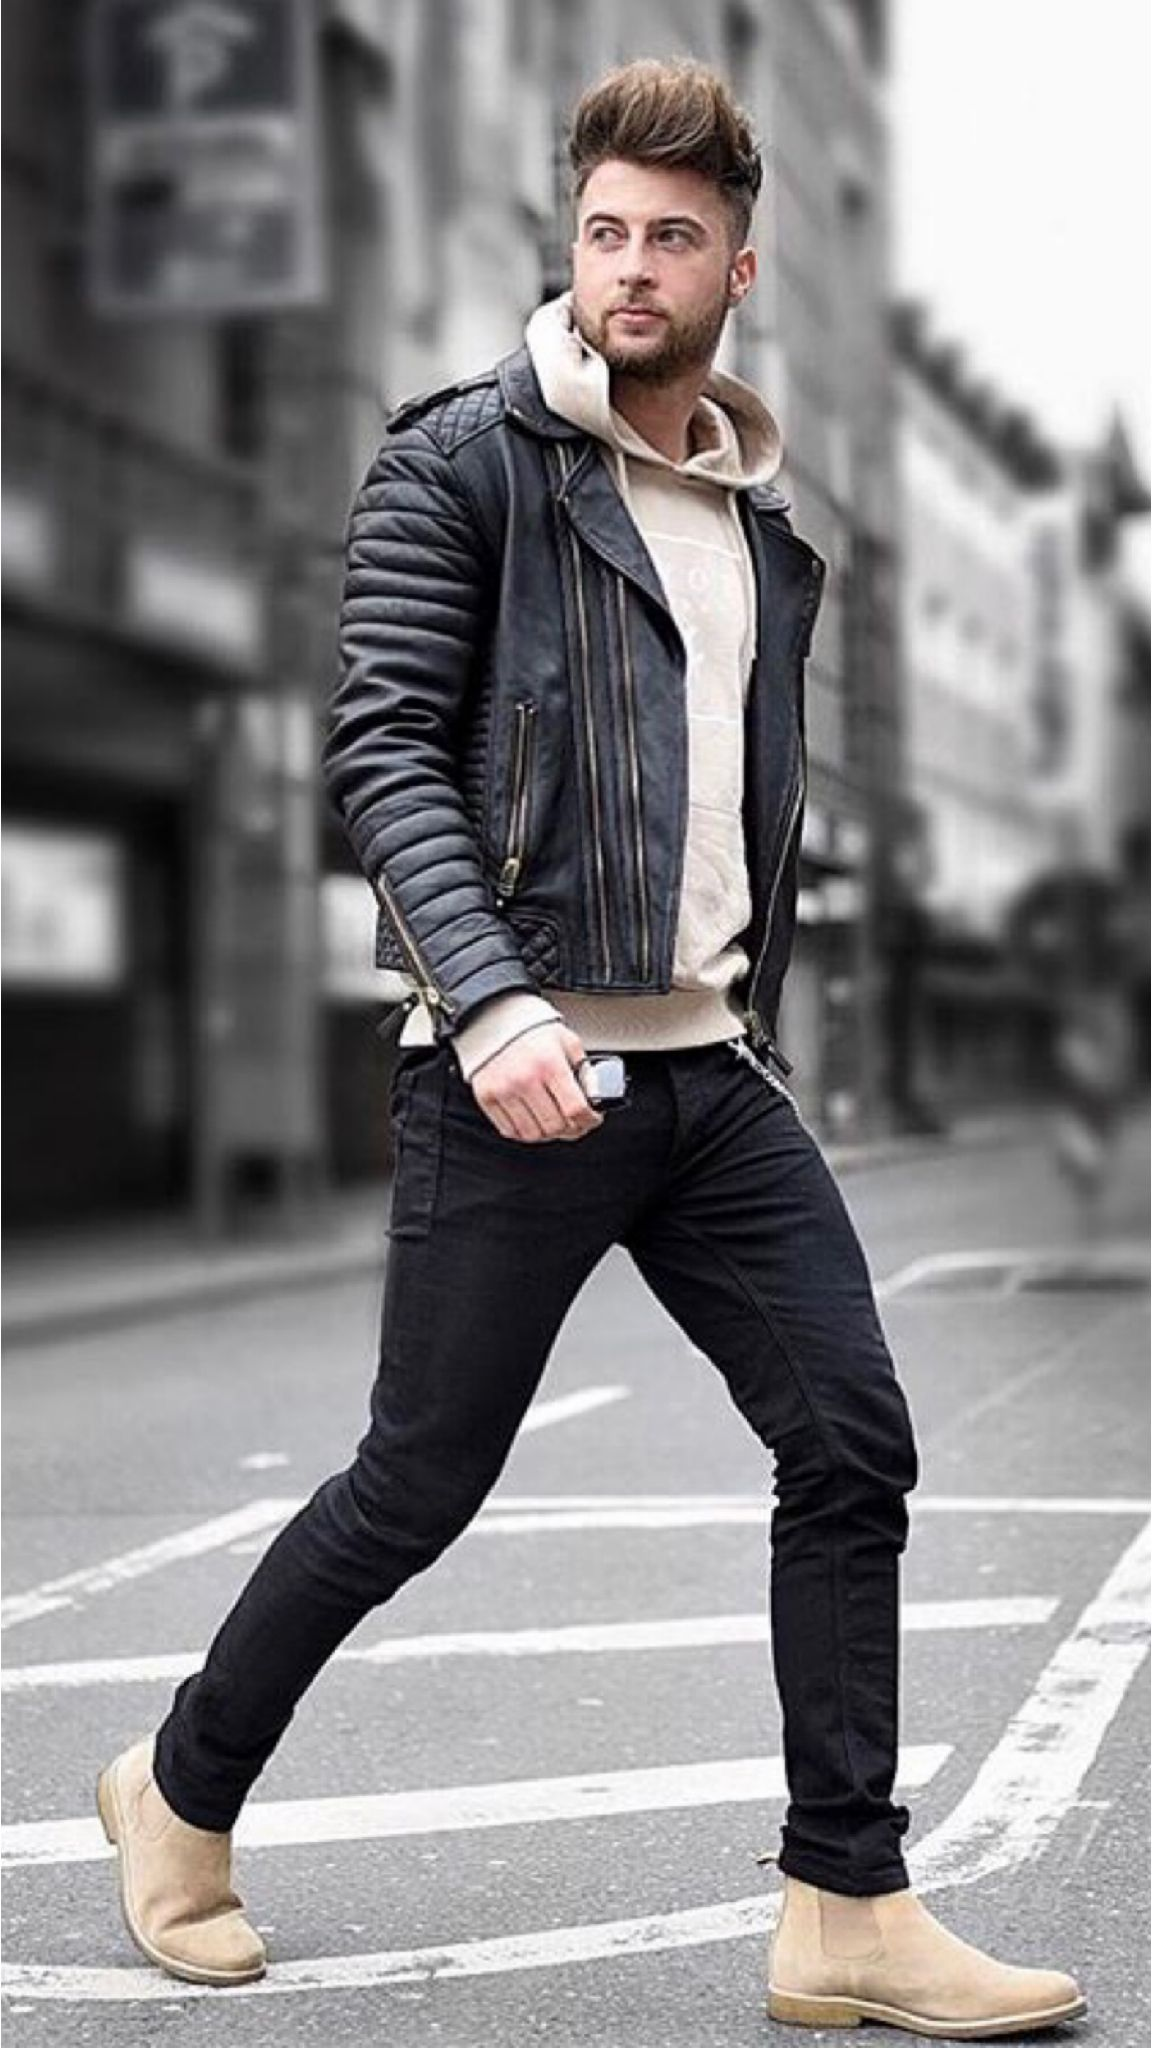 19 Outfits You Need To Copy From This Influencer Leather Jacket Outfit Men Leather Jacket Men Style Black Leather Jacket Outfit [ 2048 x 1152 Pixel ]